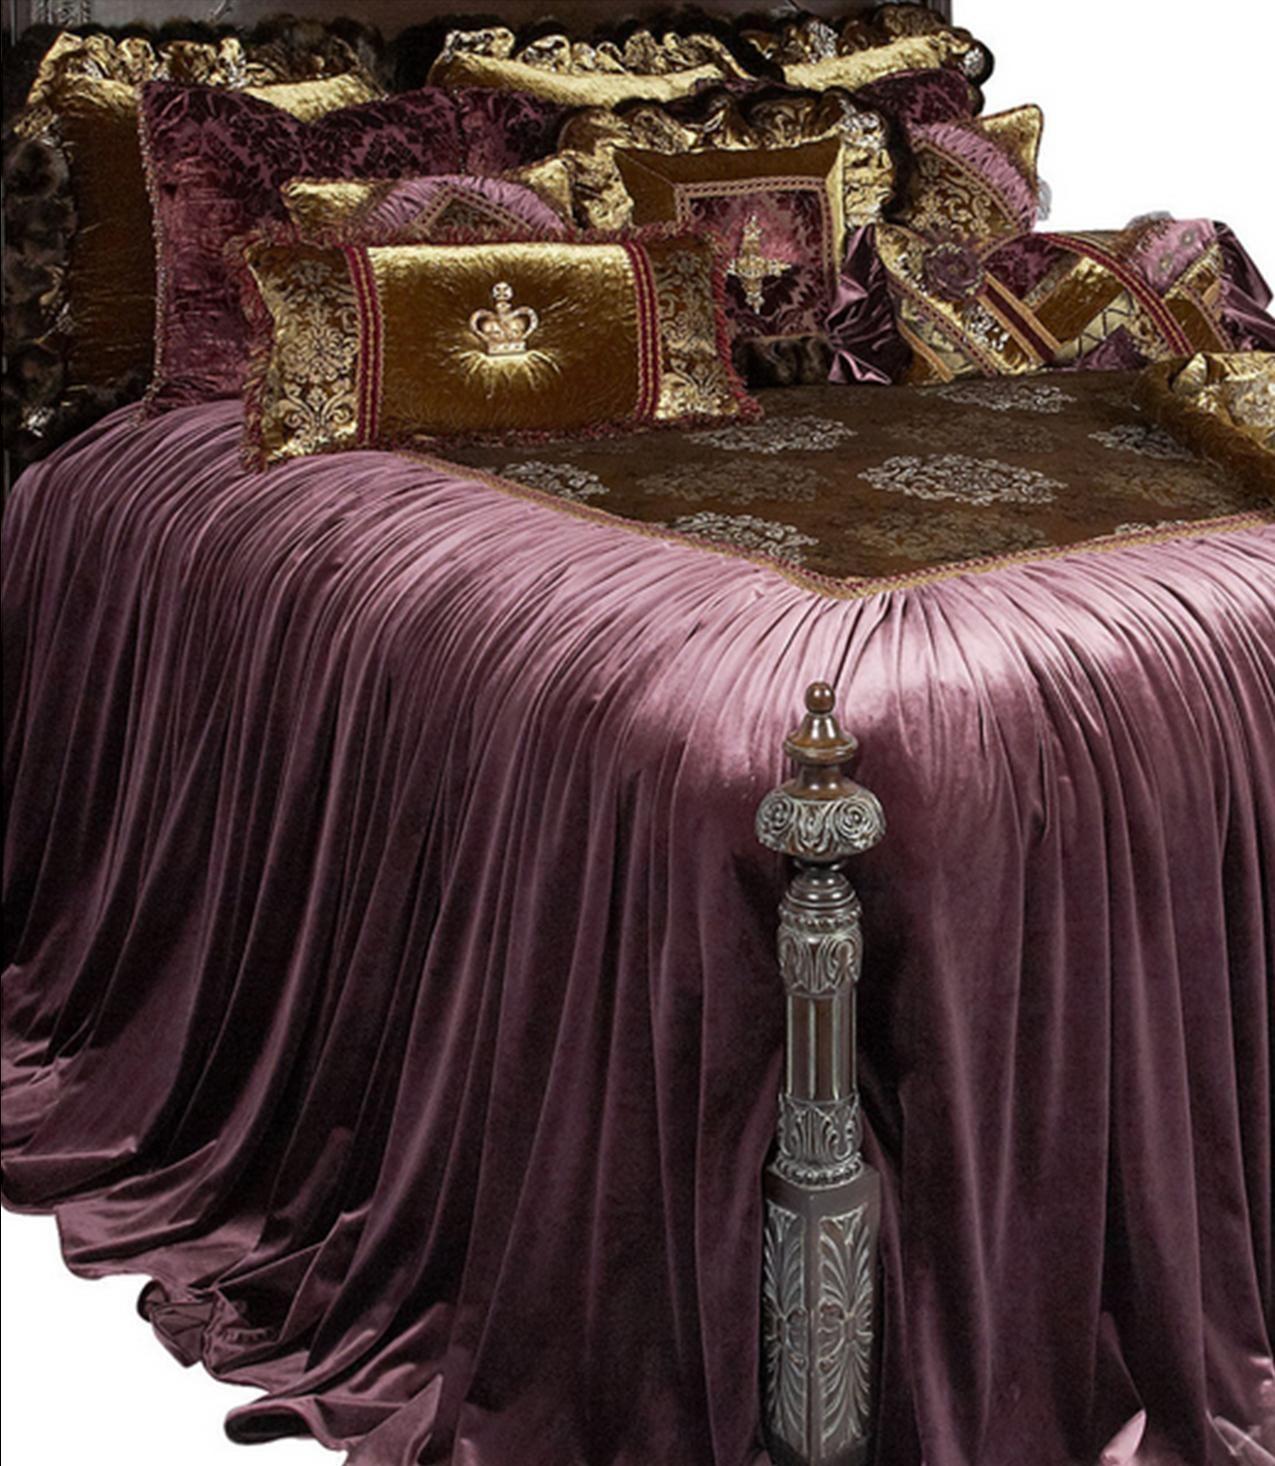 Old World Tuscan Style High End Luxury Bedding By Reilly